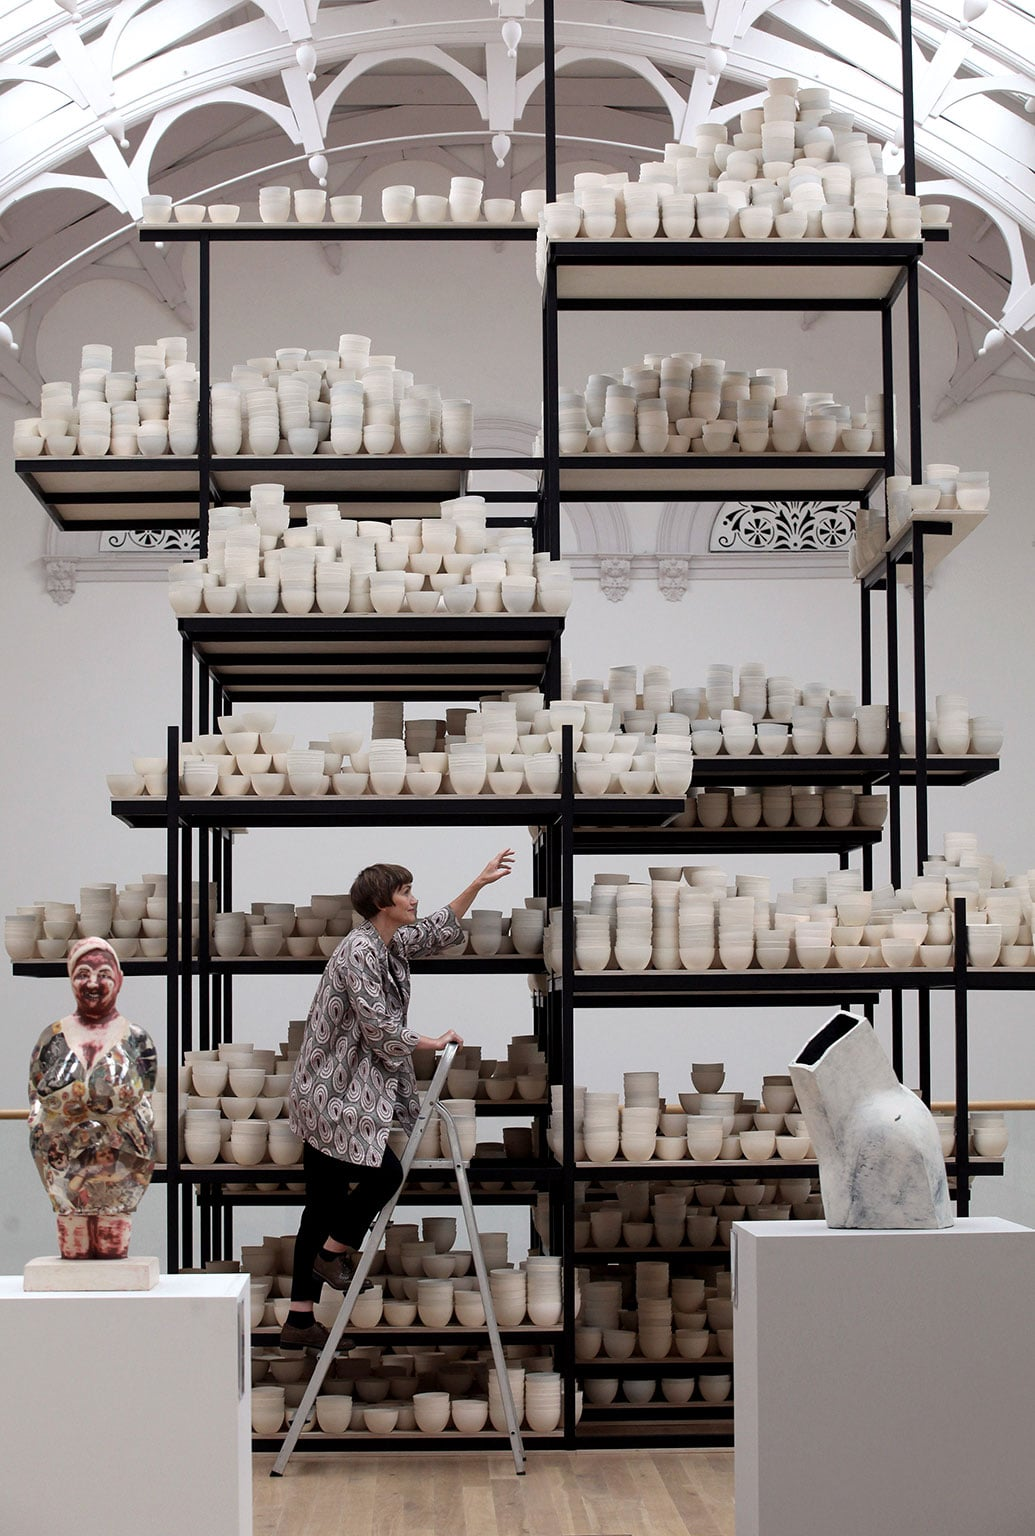 2. York Art Gallery, free with a National Art Pass - Clare Twomey, Manifest: 10,000 hours, 2015 © The artist